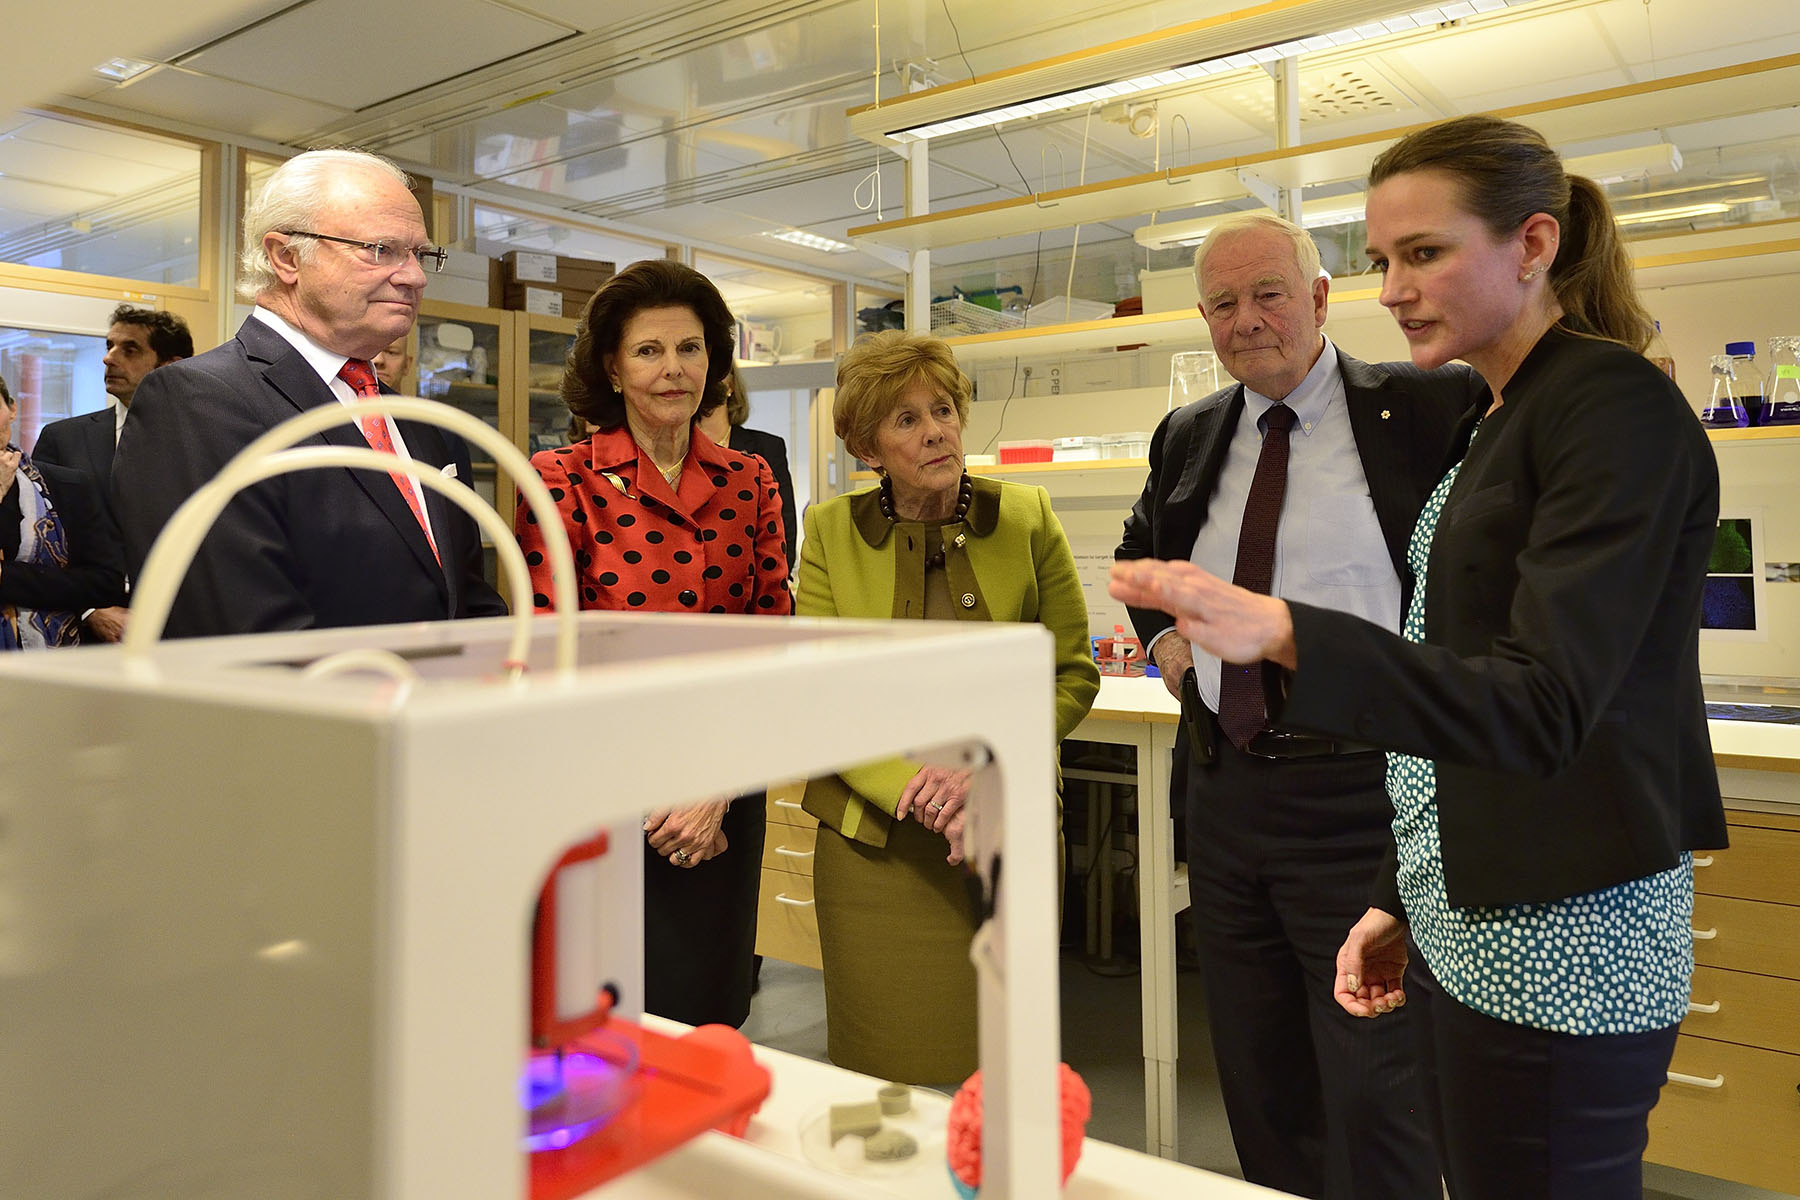 Later that morning, Their Excellencies and Their Majesties visited a lab at Karolinska Institute's Department of Neuroscience to see how a 3D bio printer can build 3D living tissues out of human cells and print cells and bioinks.